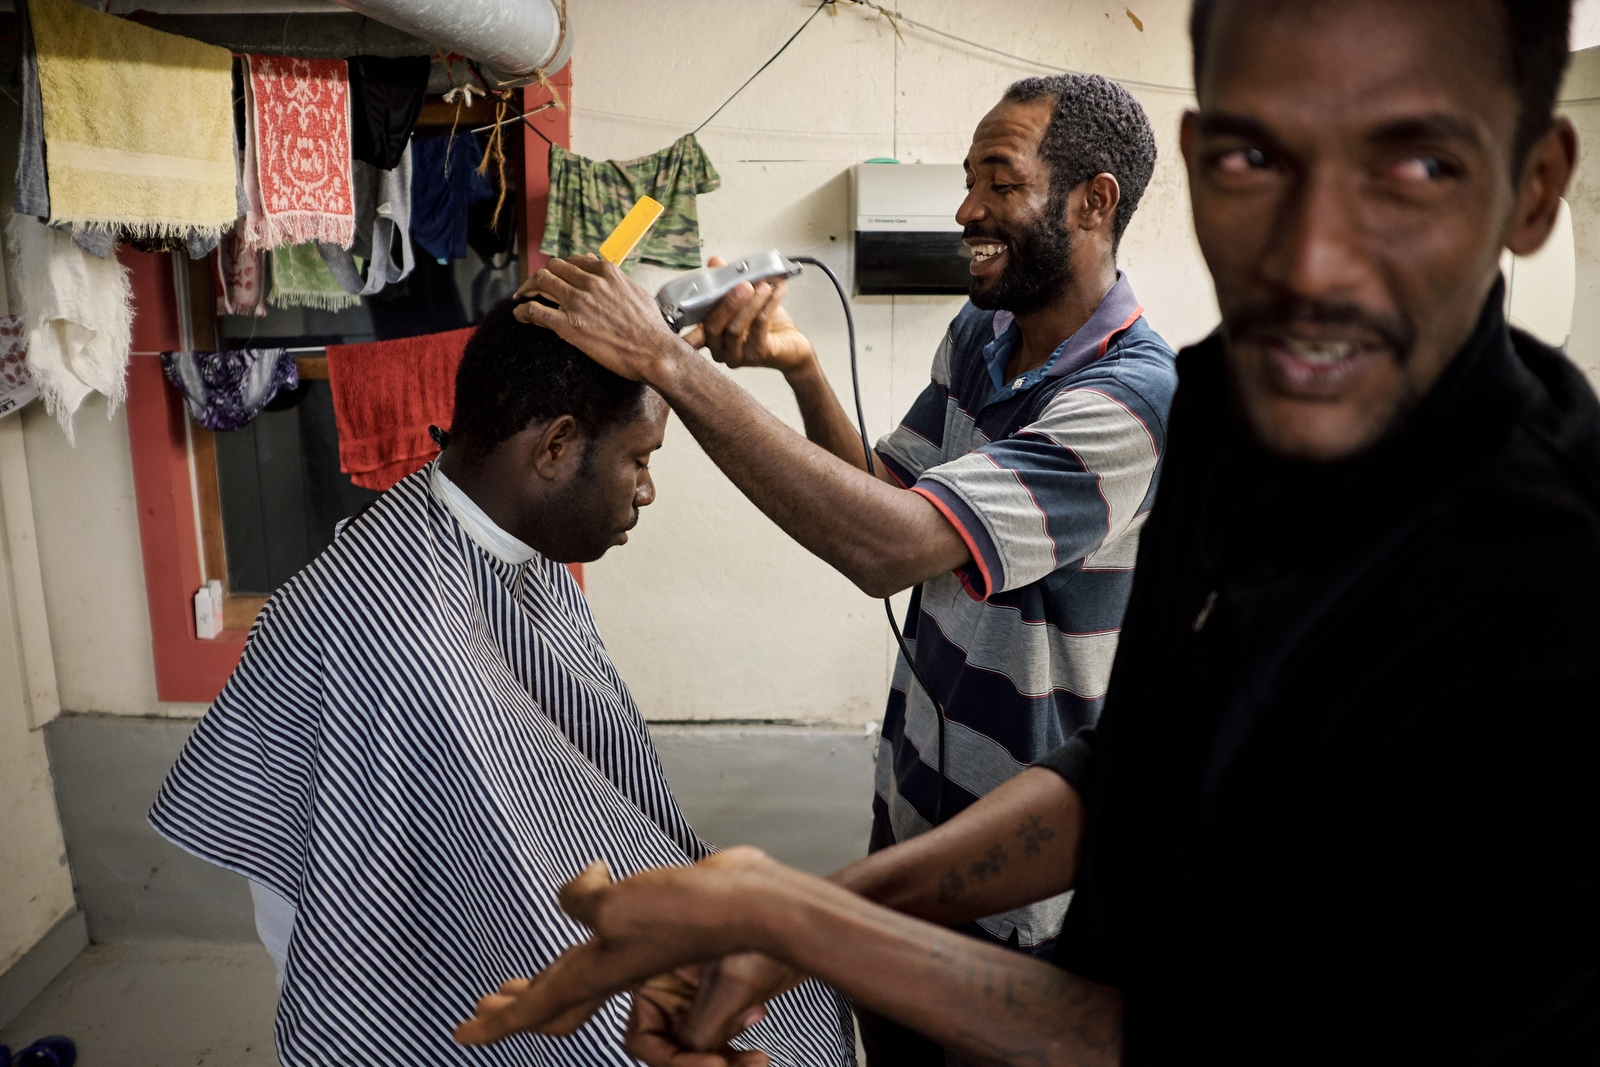 Carlington Senior, a professional barber back in Jamaica, gives hair cuts to his coworkers in the bunkhouse bathroom at Sunrise Orchards, Cornwall, Vermont.